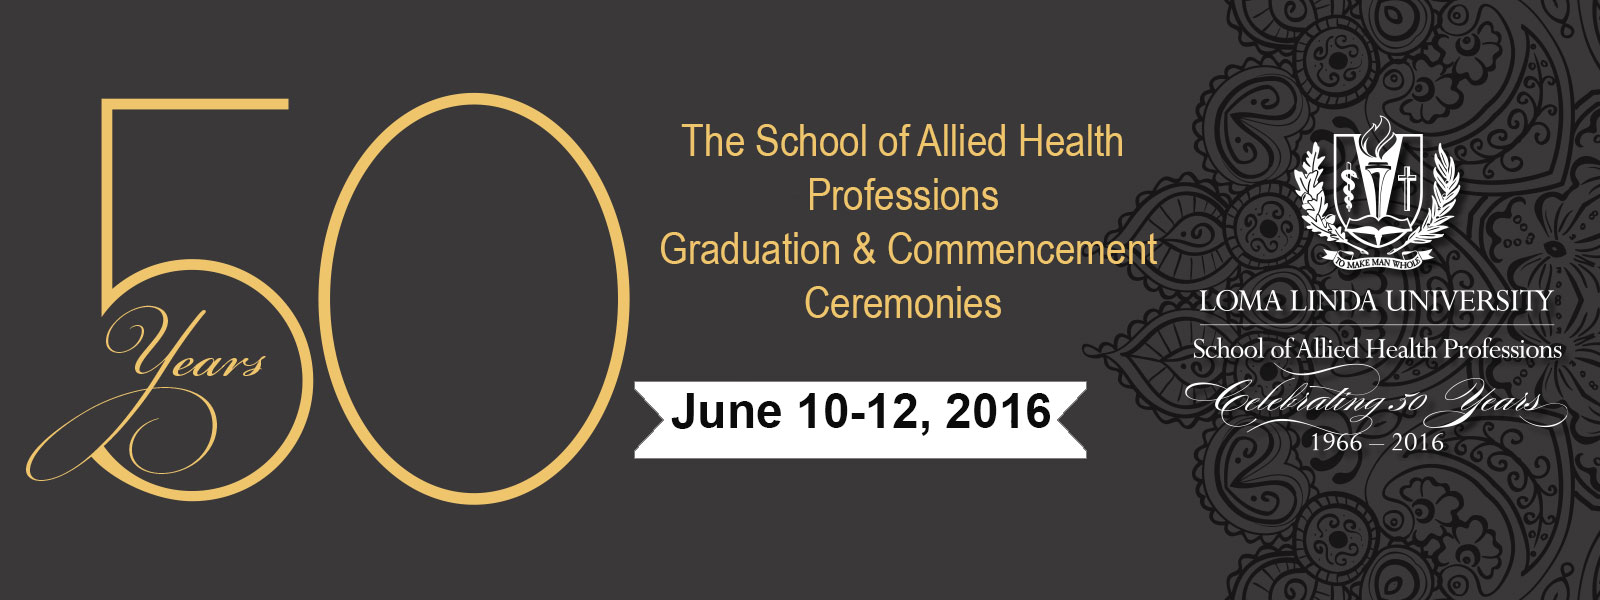 LLU School of Allied Health Celebrating 50 Years!